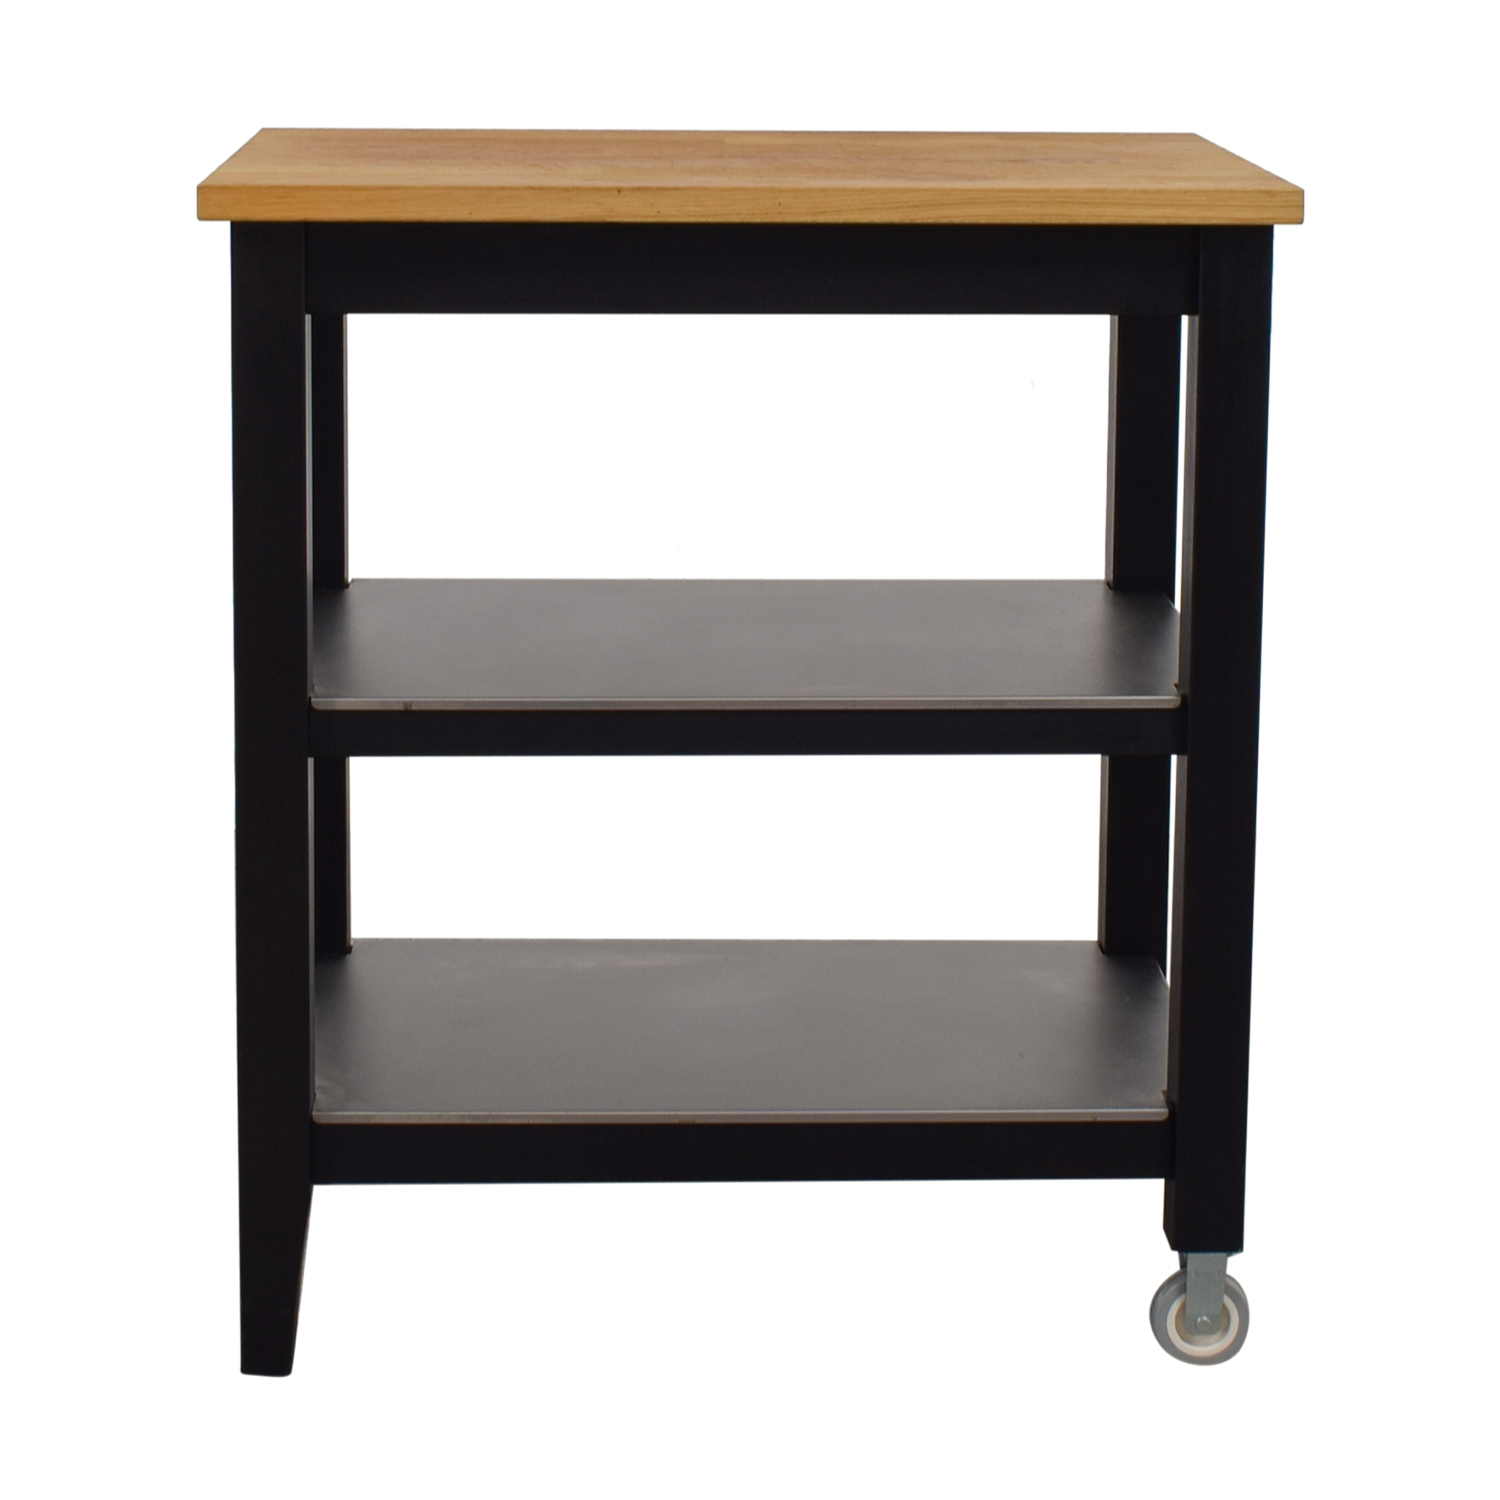 IKEA IKEA Stenstorp Wood and Black Kitchen Island Cart coupon